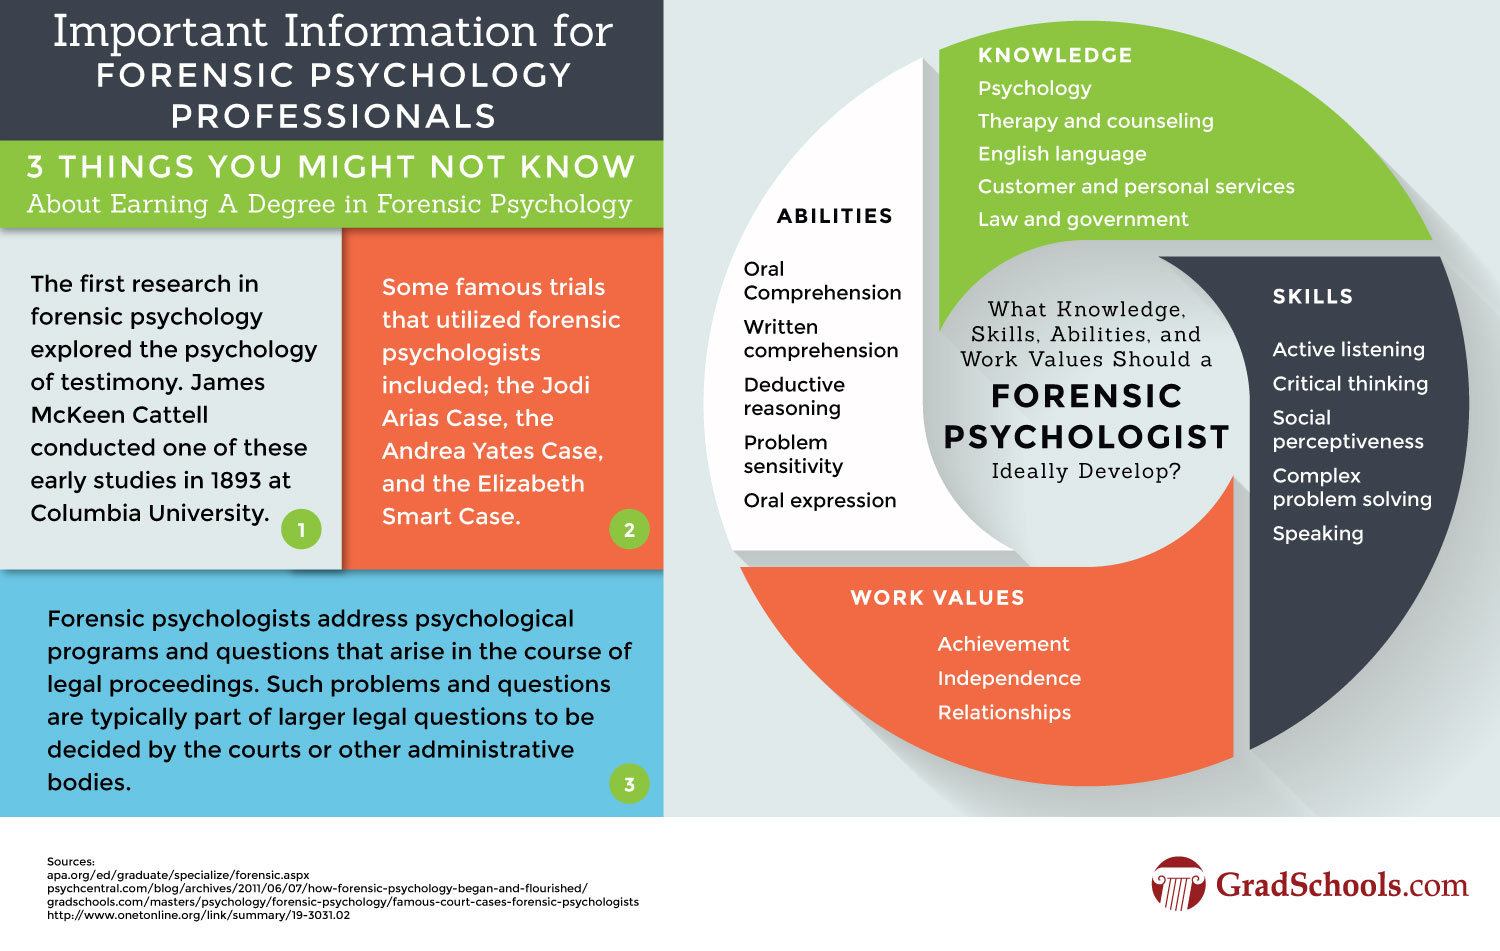 Doctorate in Forensic Psychology Information